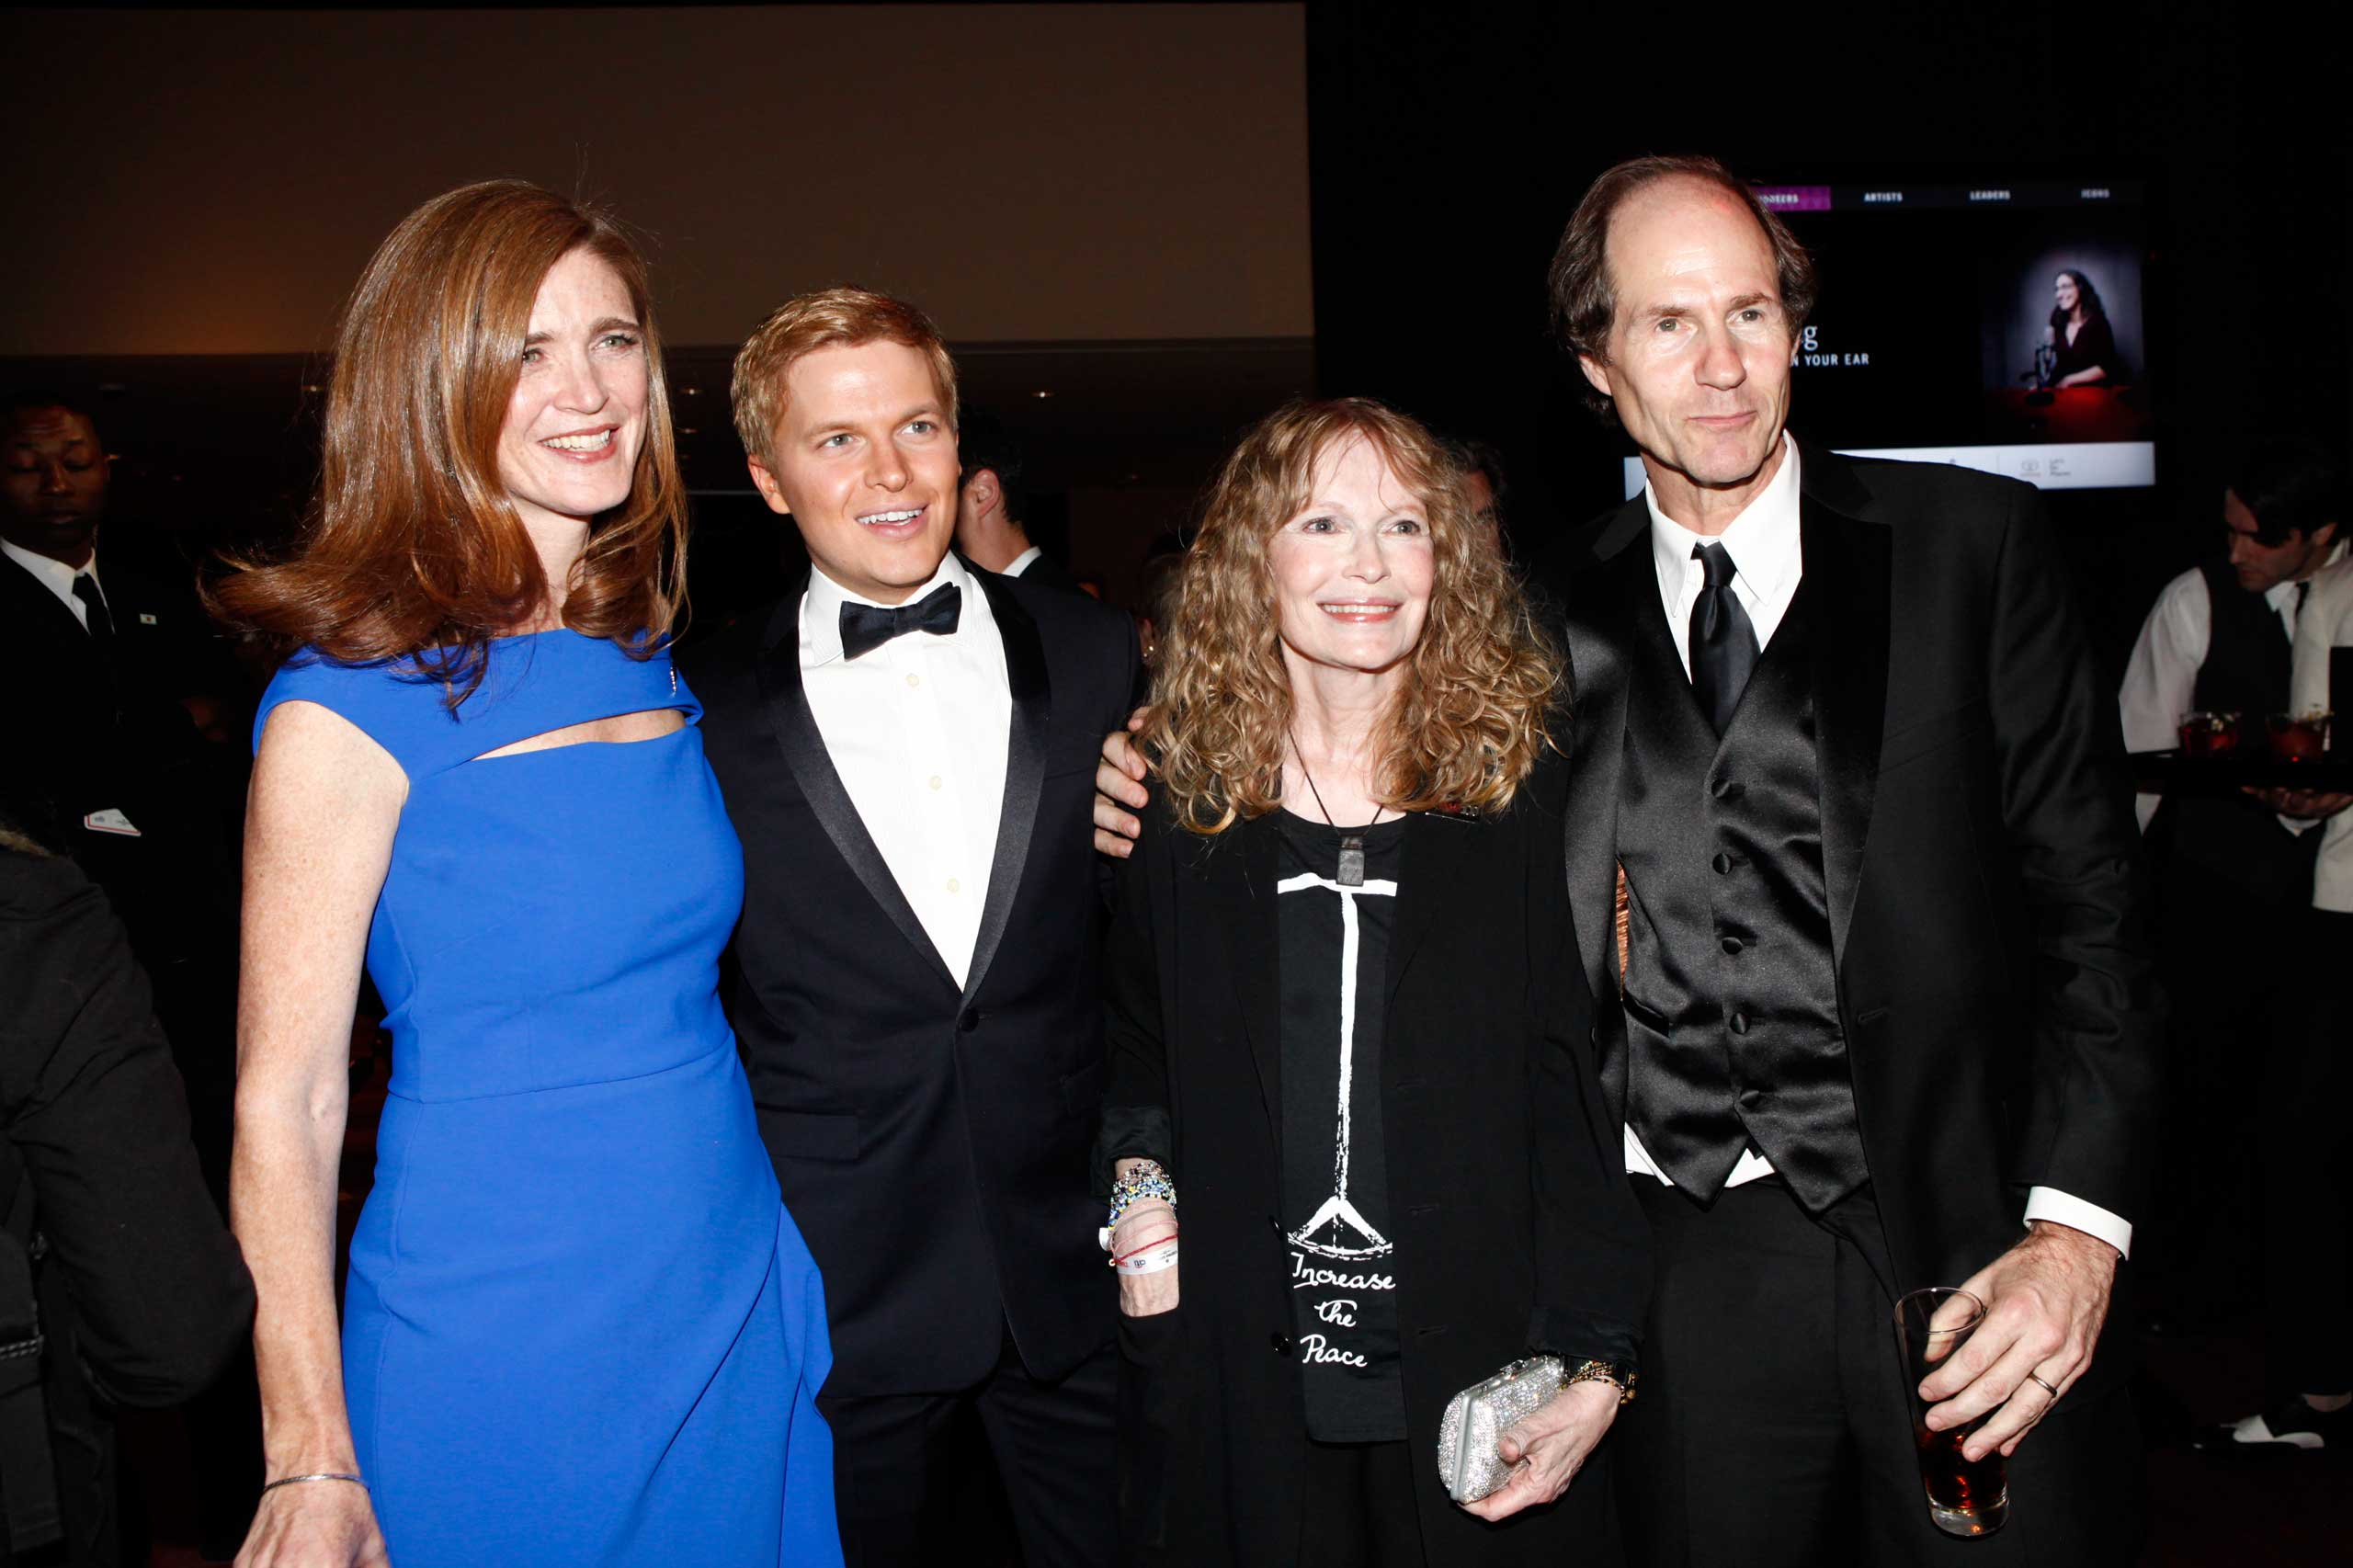 Samantha Powers,  Ronan Farrow, Mia Farrow, and Cass Sunstein attend the TIME 100 Gala at Jazz at Lincoln Center in New York City on April 21, 2015.